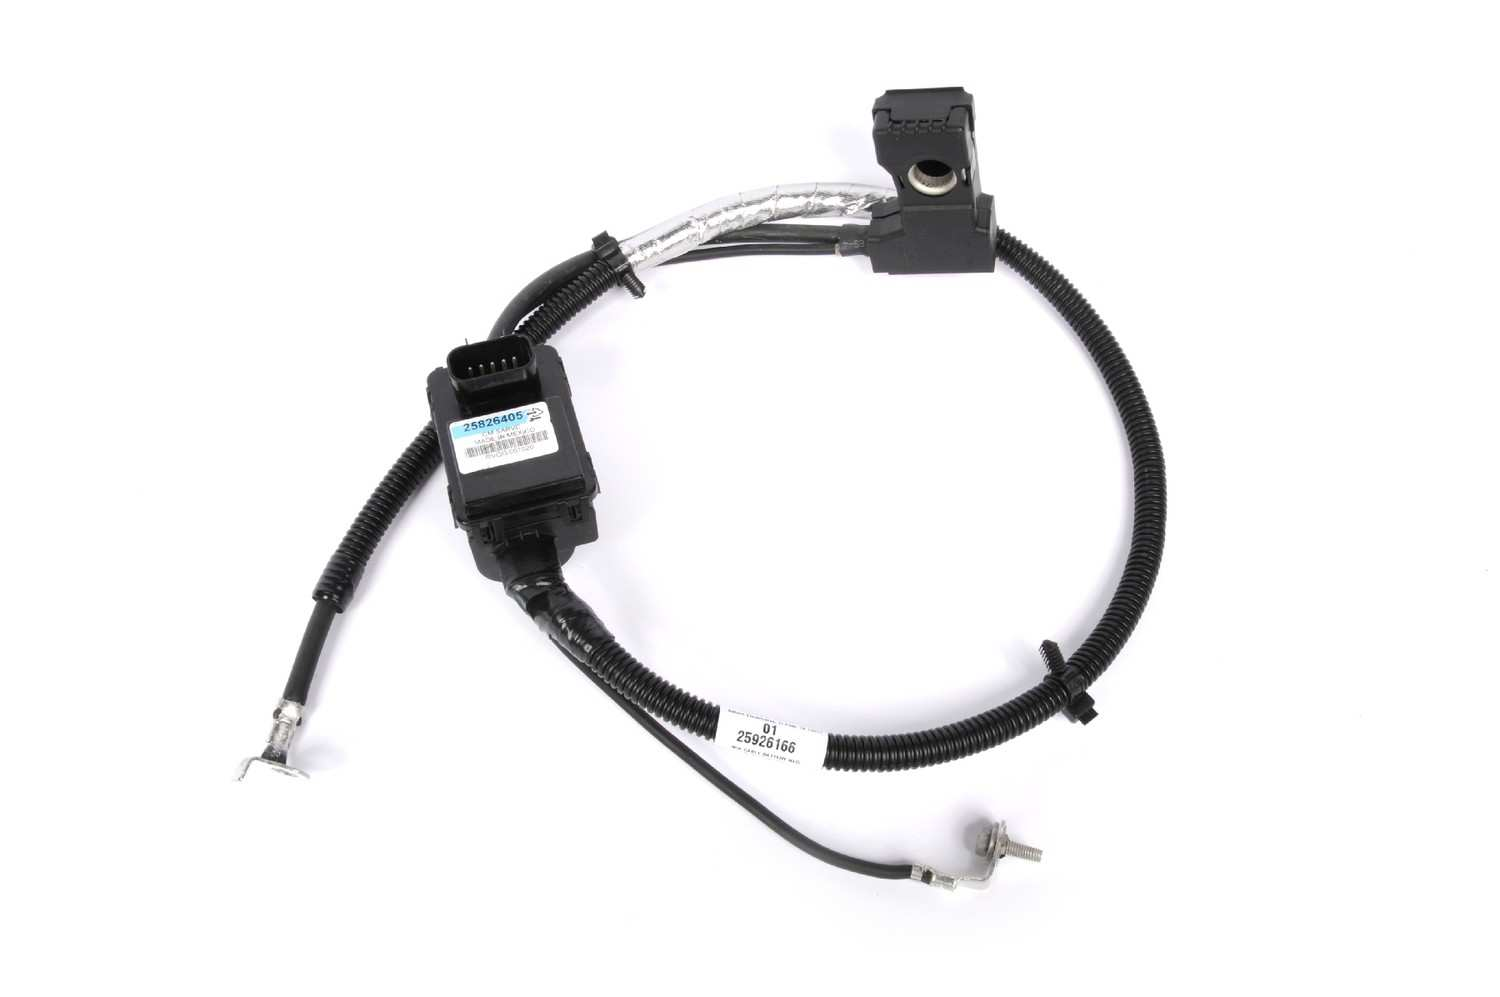 ACDELCO GM ORIGINAL EQUIPMENT - Battery Cable Harness - DCB 25926166